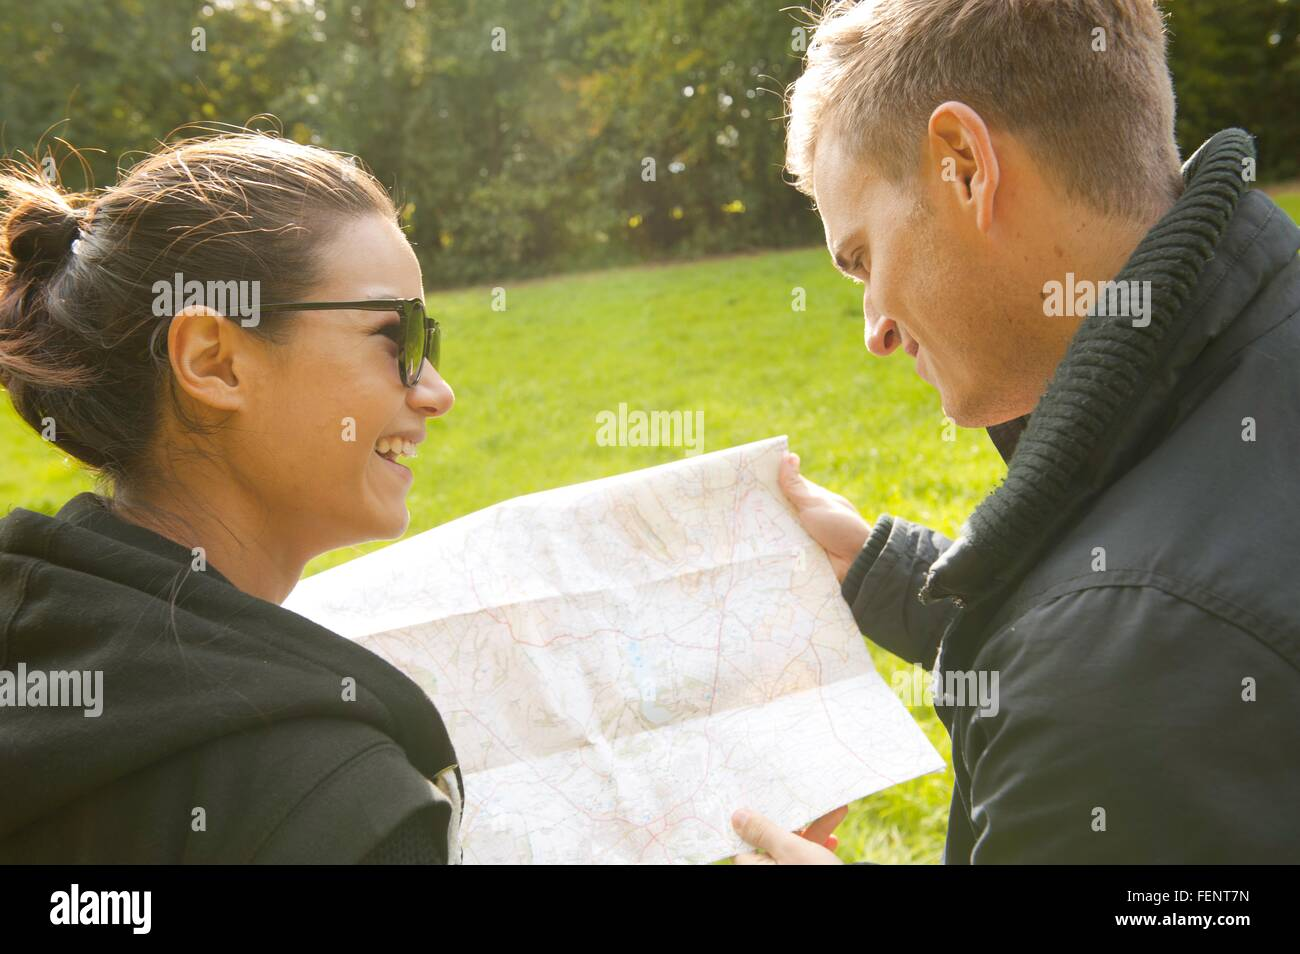 Over the shoulder view of young couple reading map in field - Stock Image